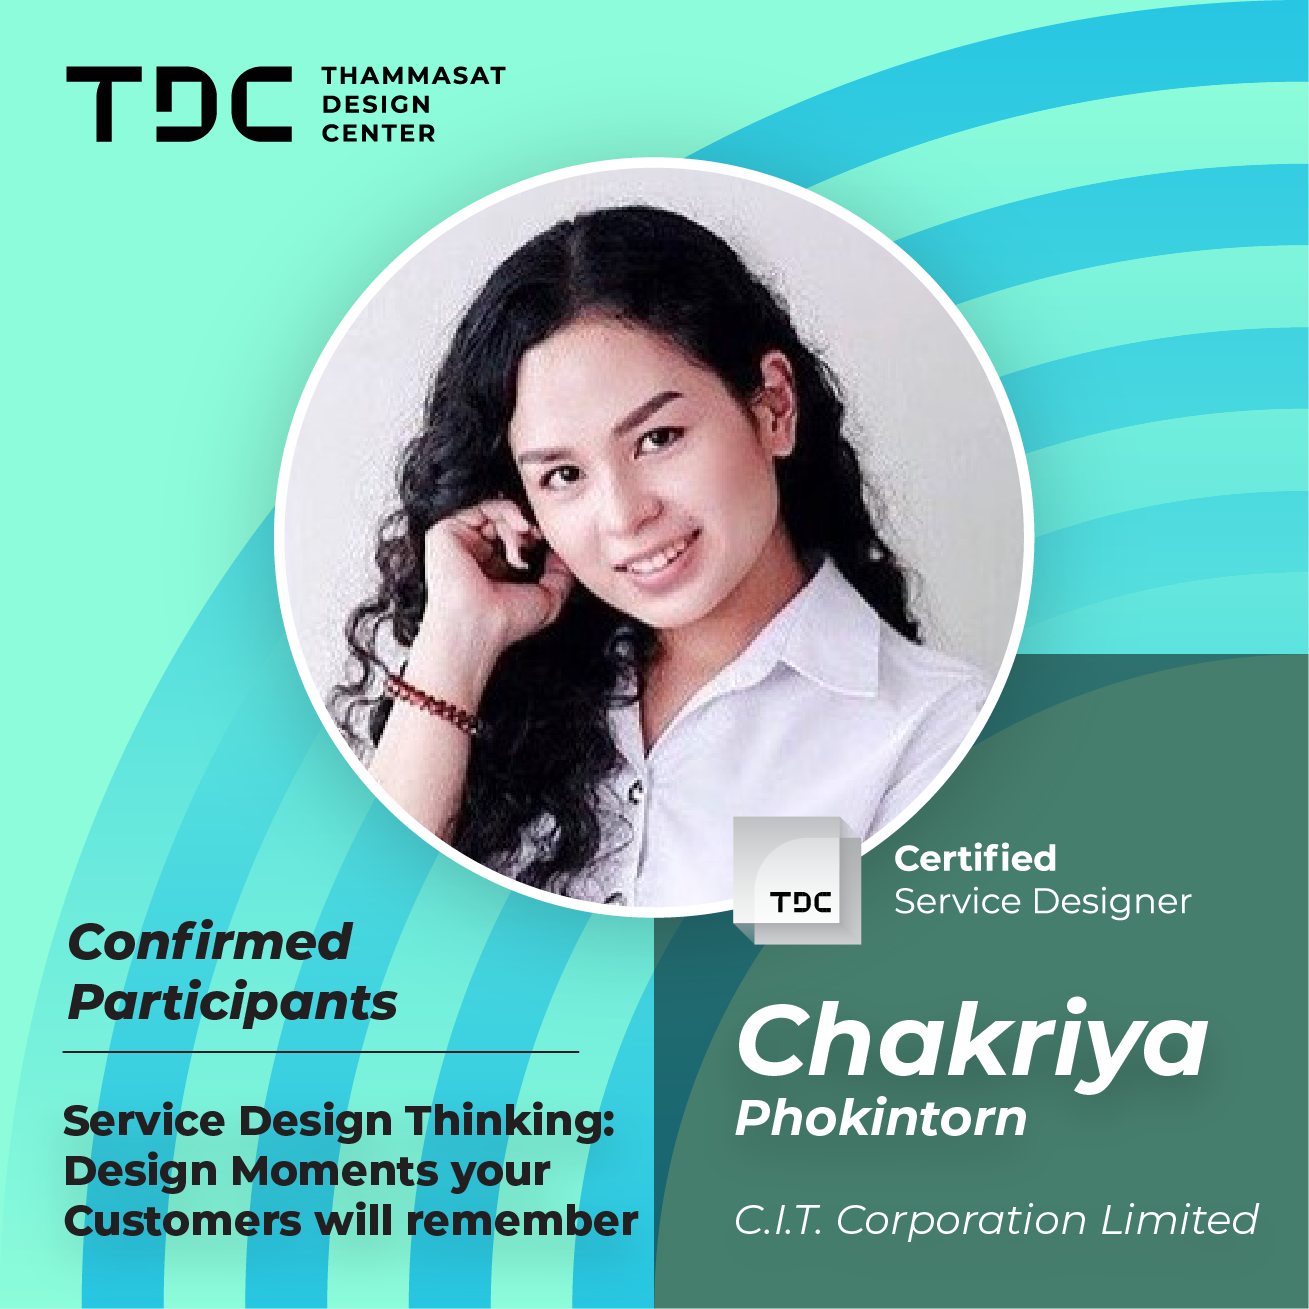 TDC Service Design [1] - Confirmed Participants-02